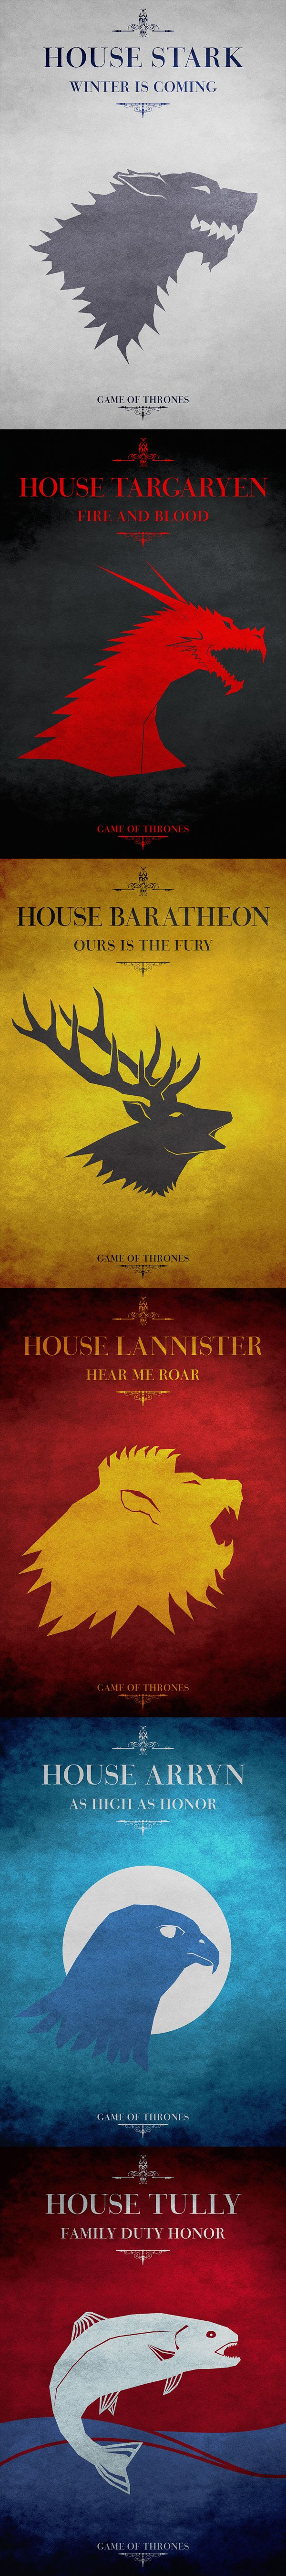 Game of Thrones by Guillaume Bachelier, via Behance  #got #agot #asoiaf